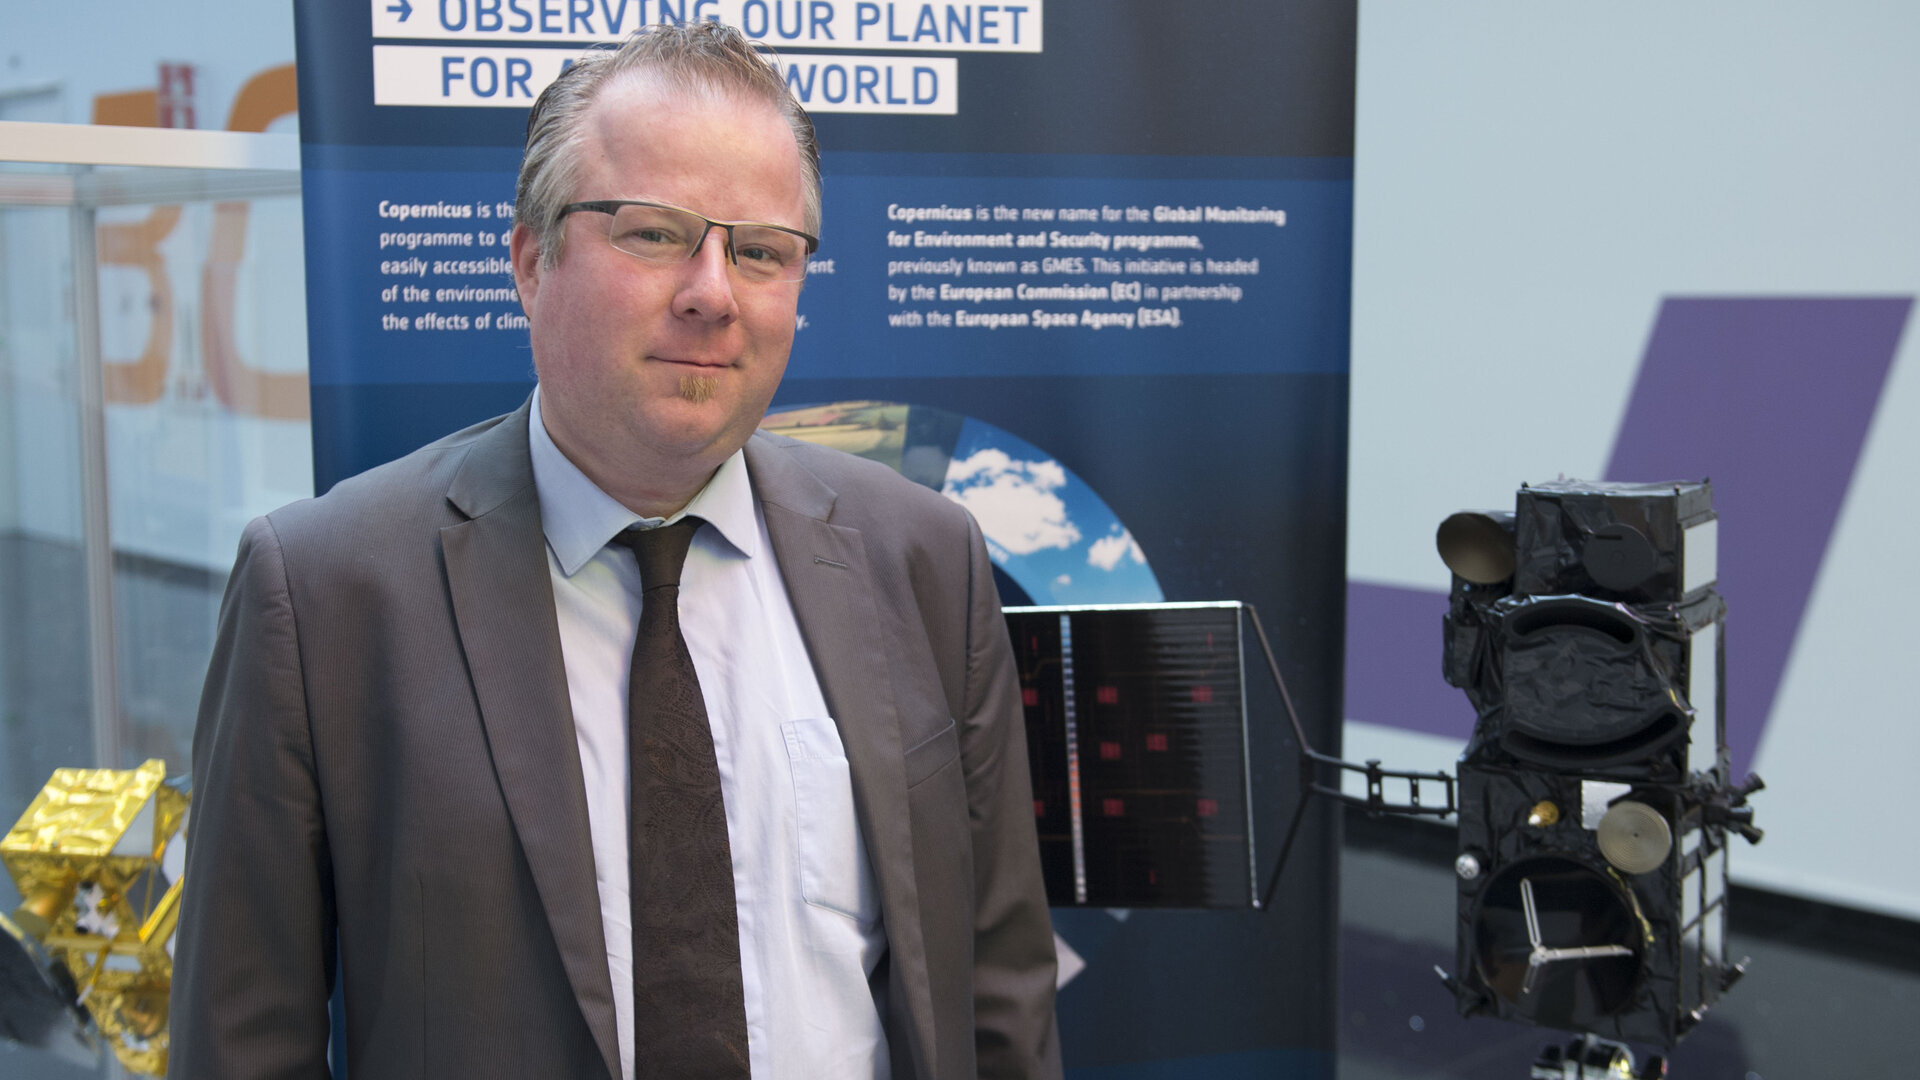 Jean-François Flamand: Sentinel-3 Product Assurance and Safety Manager